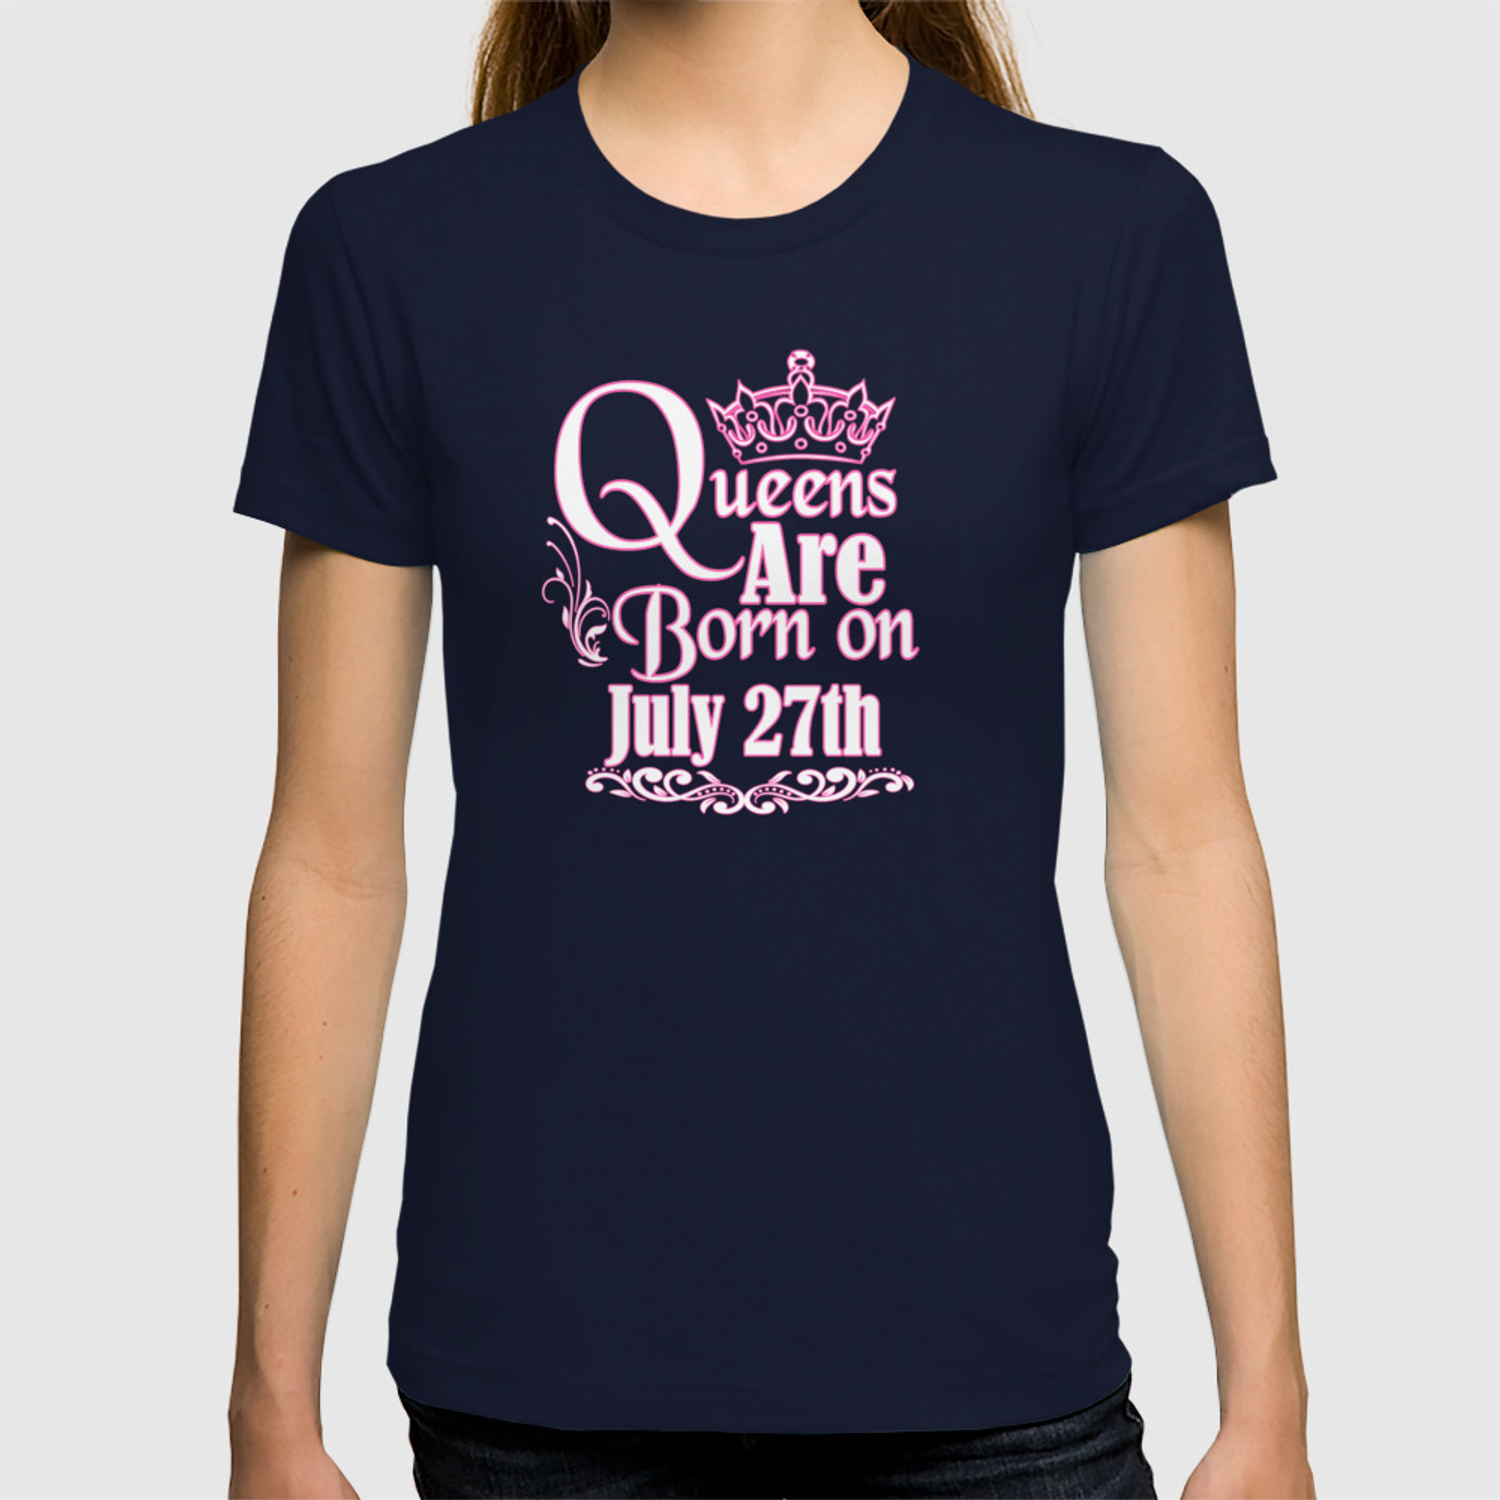 ce4e3c904 Queens Are Born On July 27th Funny Birthday T-Shirt T-shirt by teekaboom |  Society6